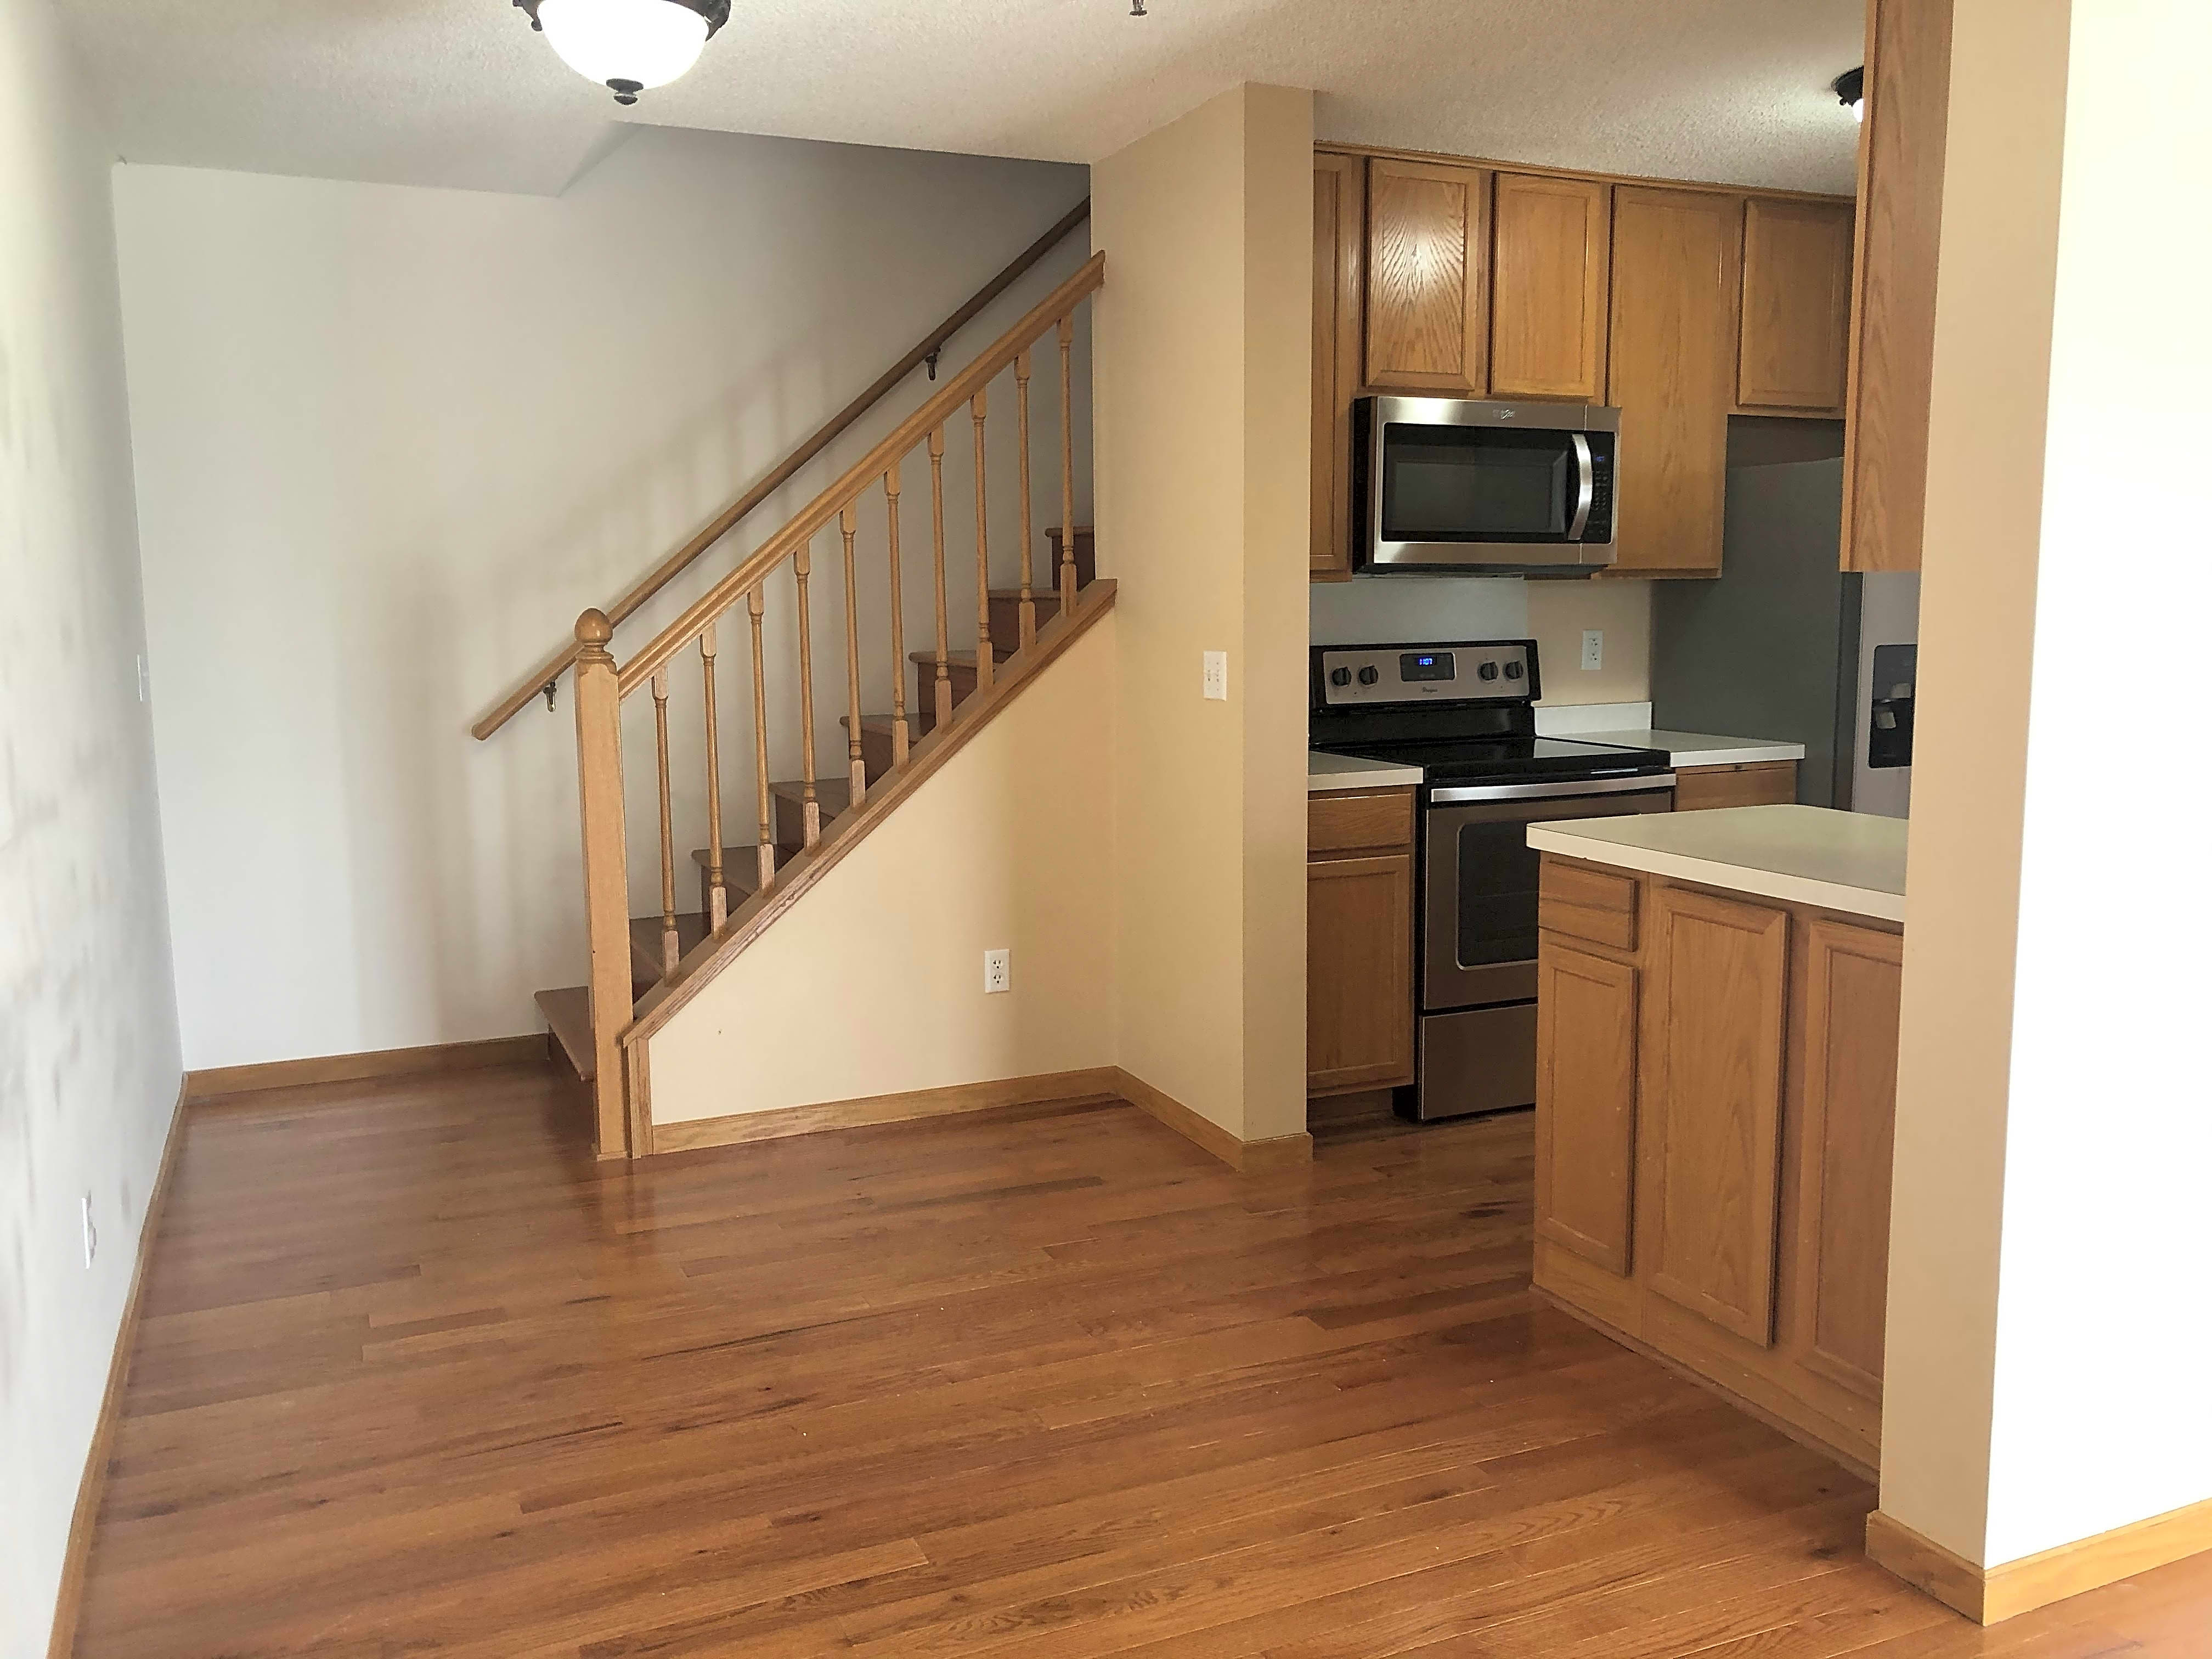 House for Rent in Inver Grove Heights